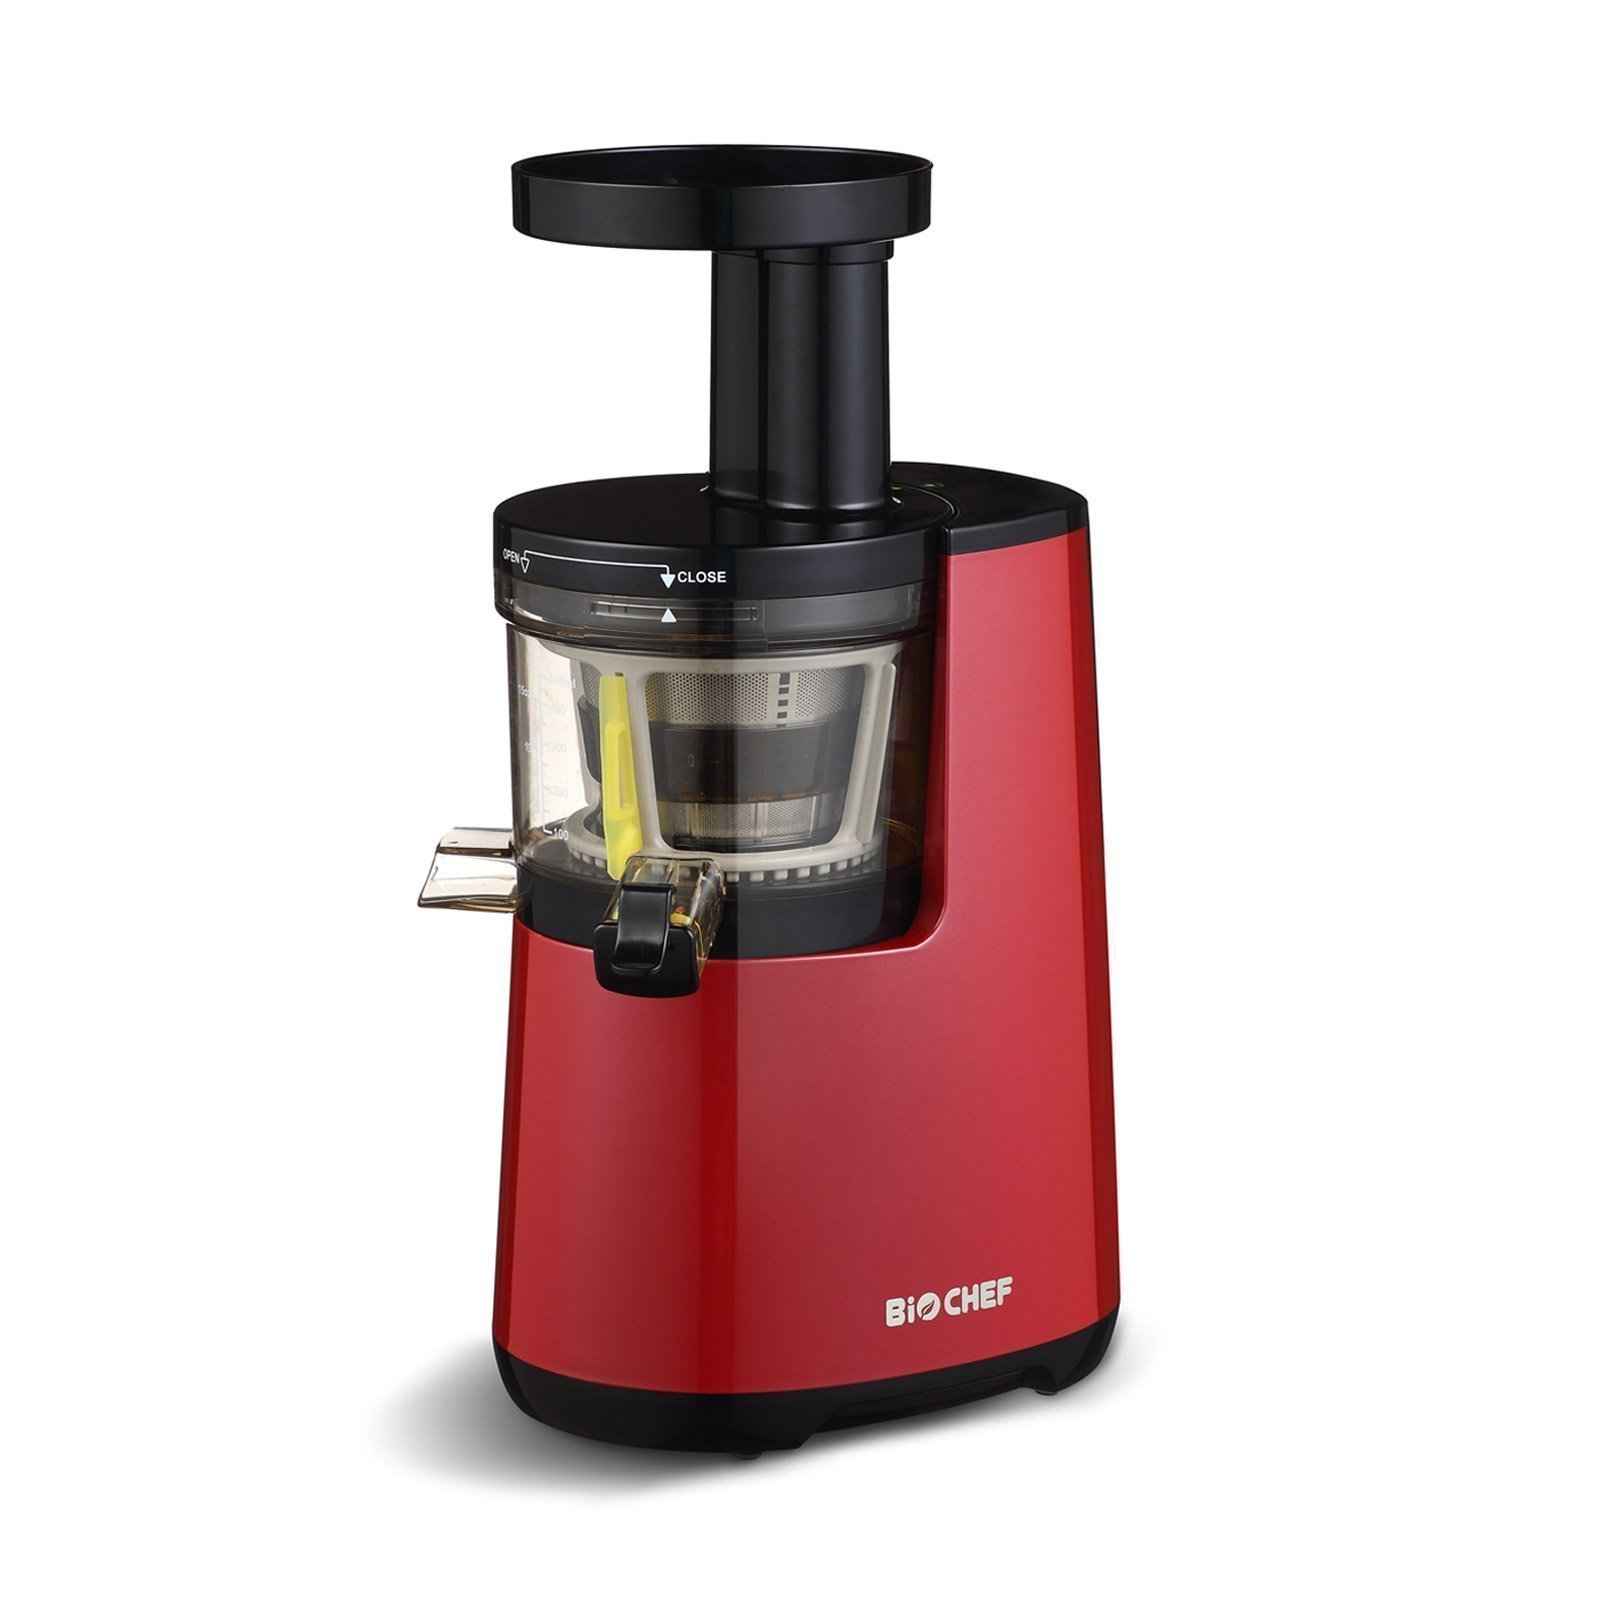 Is Slow Juicing Good : NEW BioChef Atlas Cold Press Slow Fruit Juicer - Red eBay